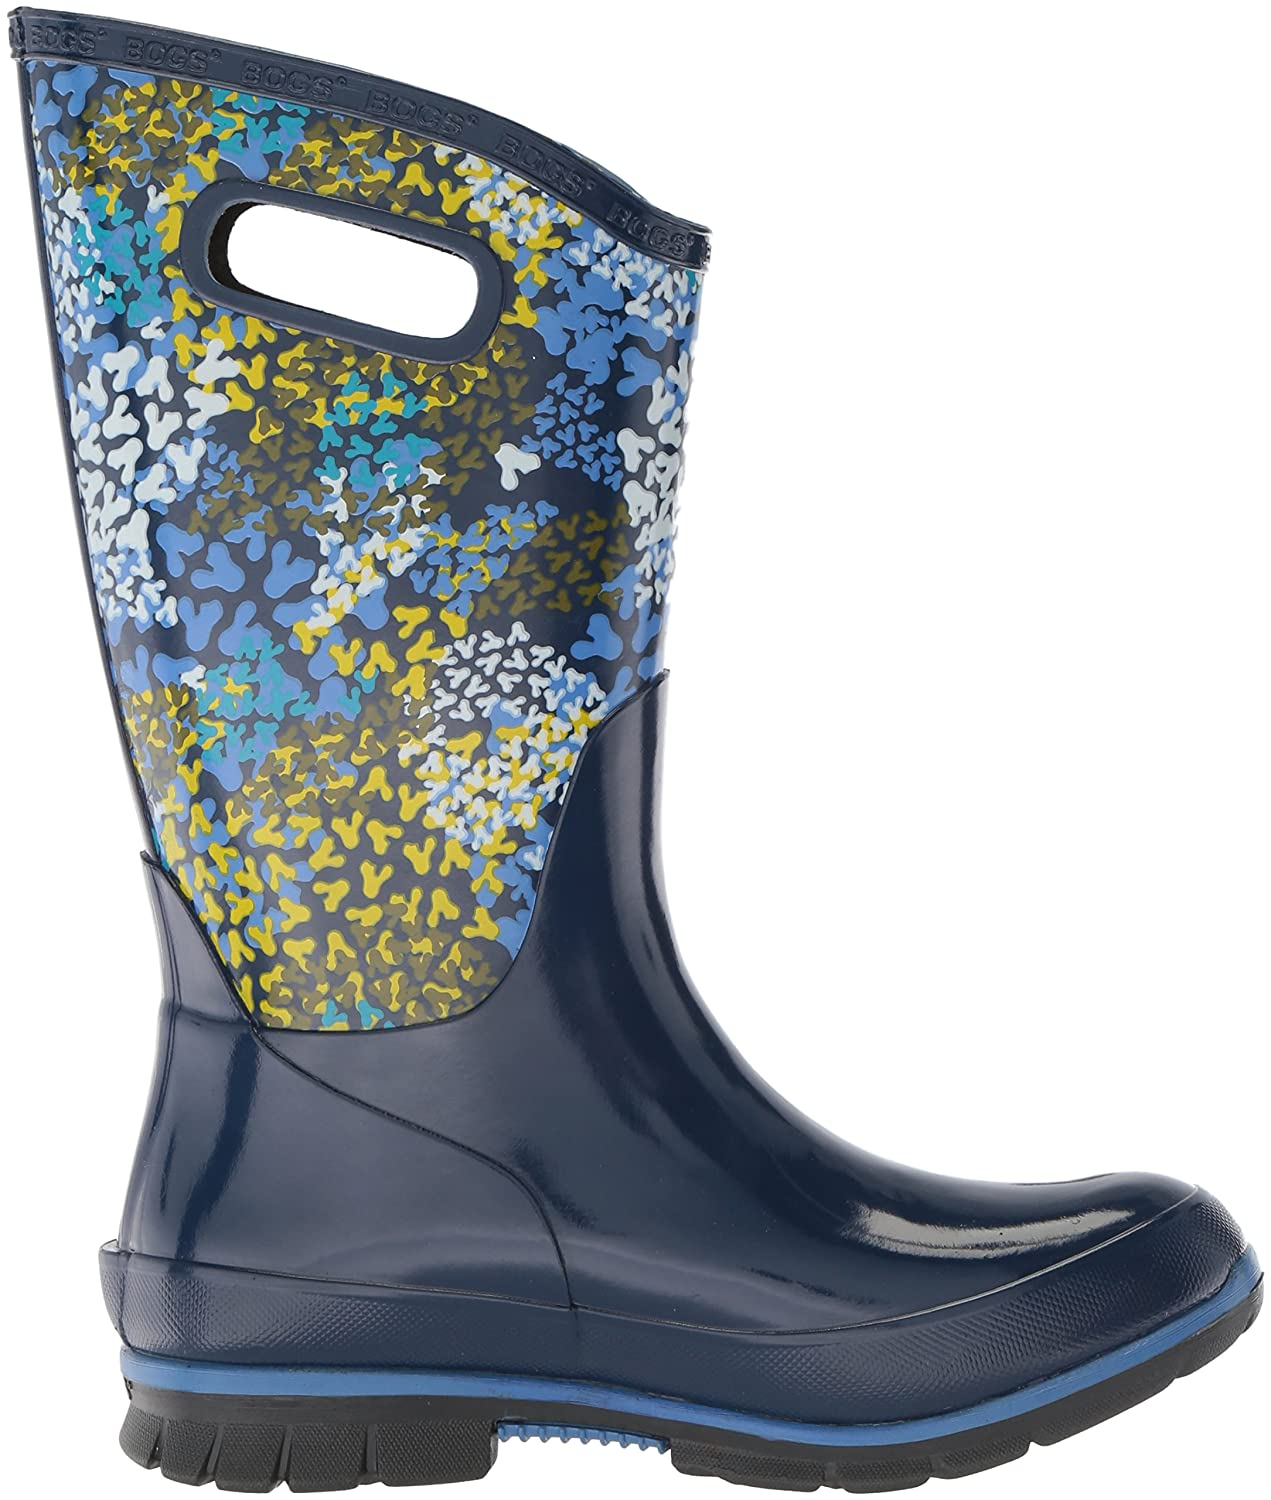 Bogs Women's B073PJFM1H Berkley Footprints Rain Boot B073PJFM1H Women's 8 B(M) US|Blue/Multi b15930